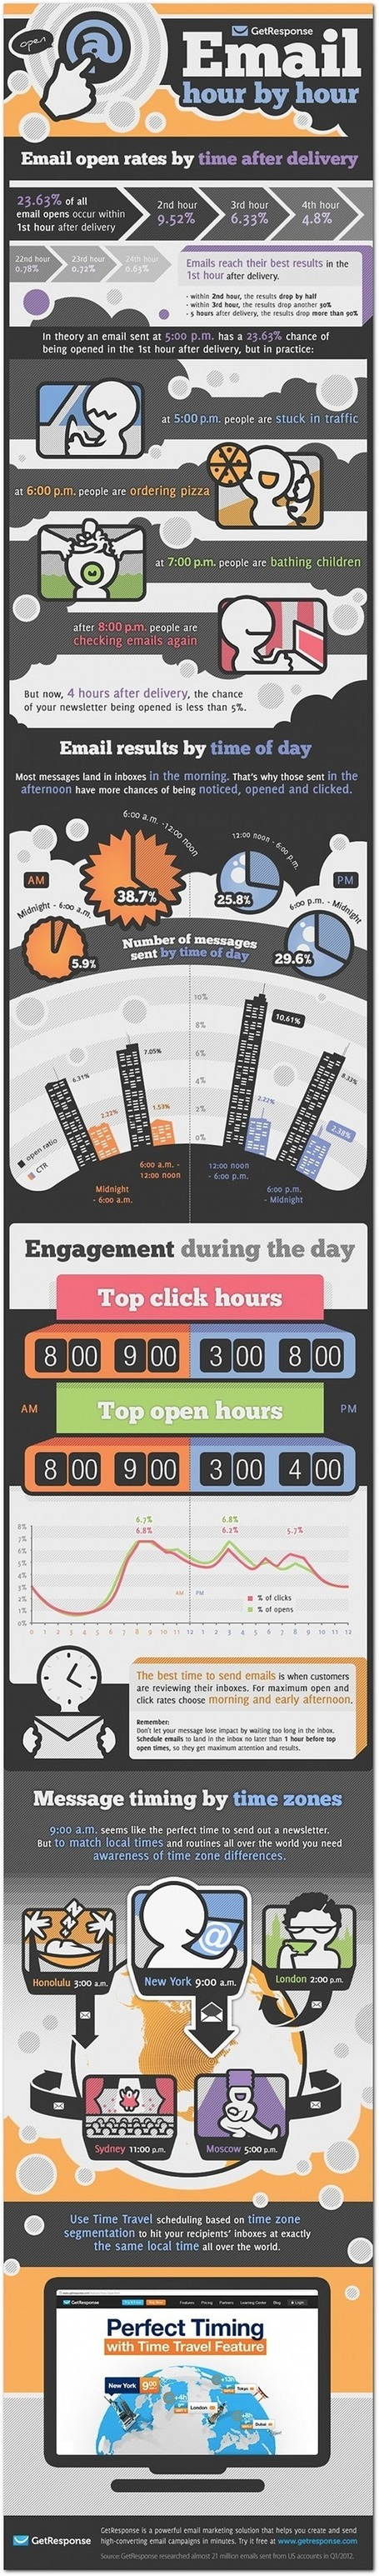 The Best Times to Send Emails [Infographic] | Social Mercor | Scoop.it